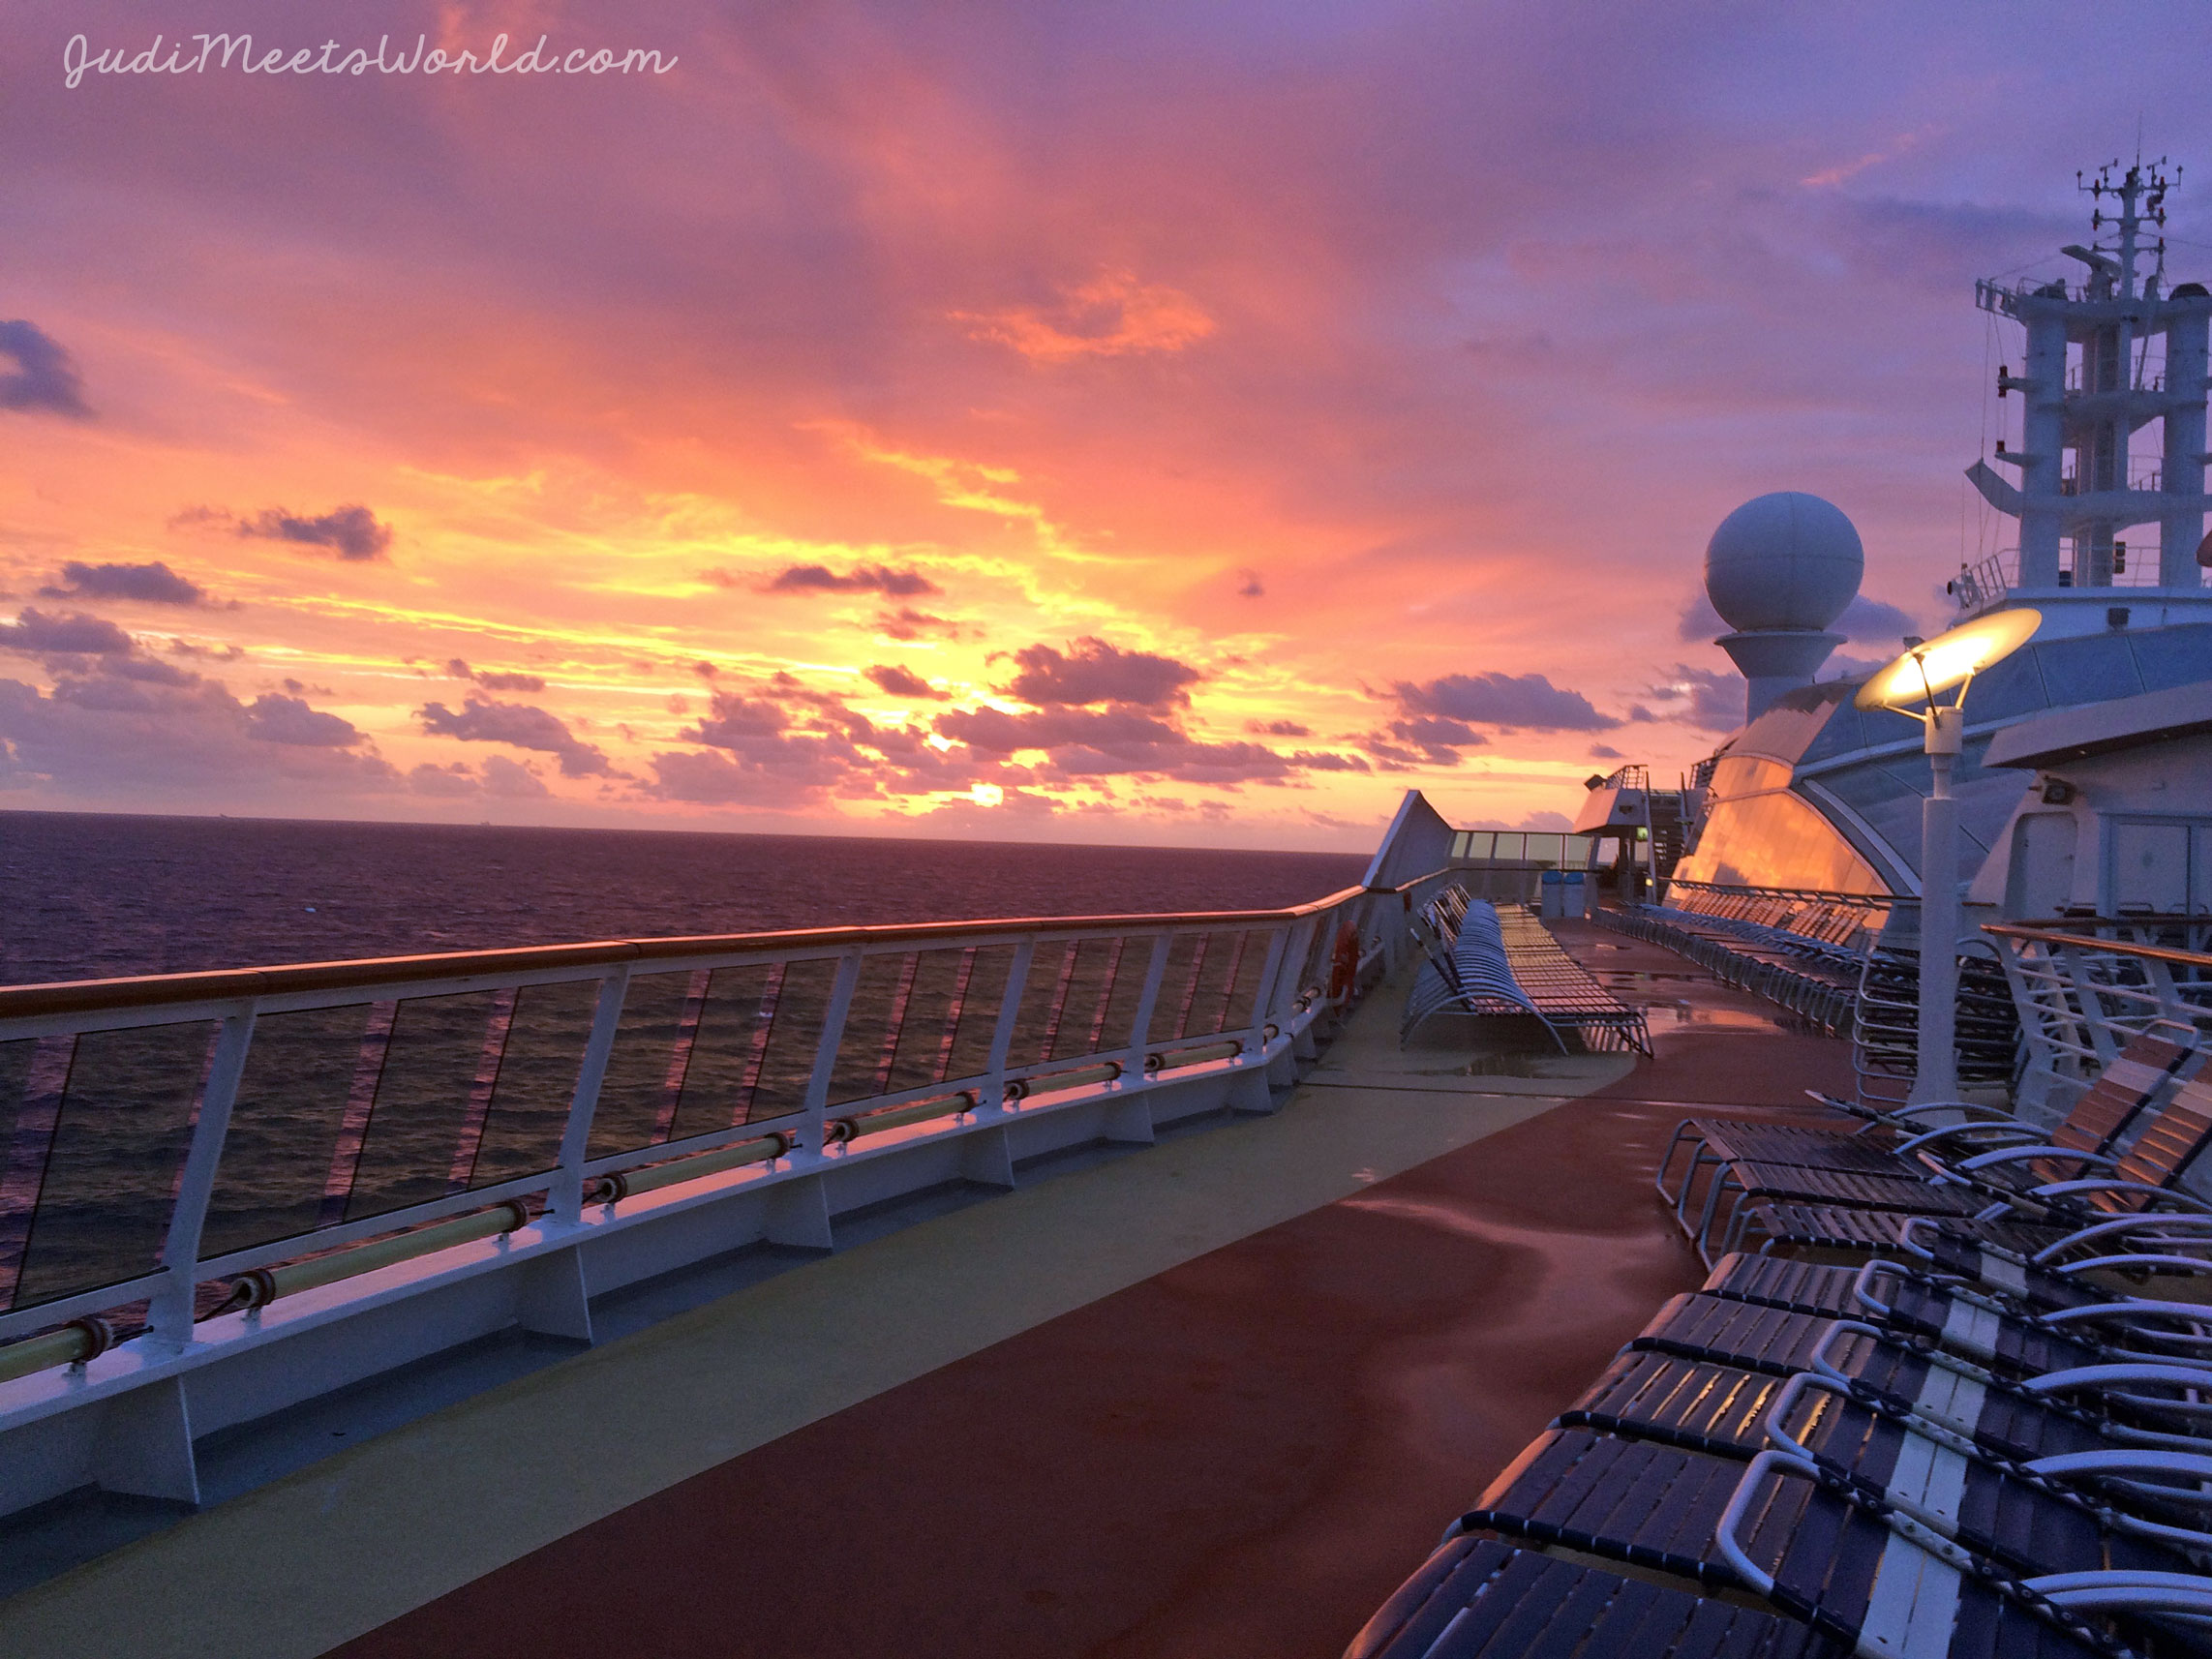 Meet Jewel of the Seas.